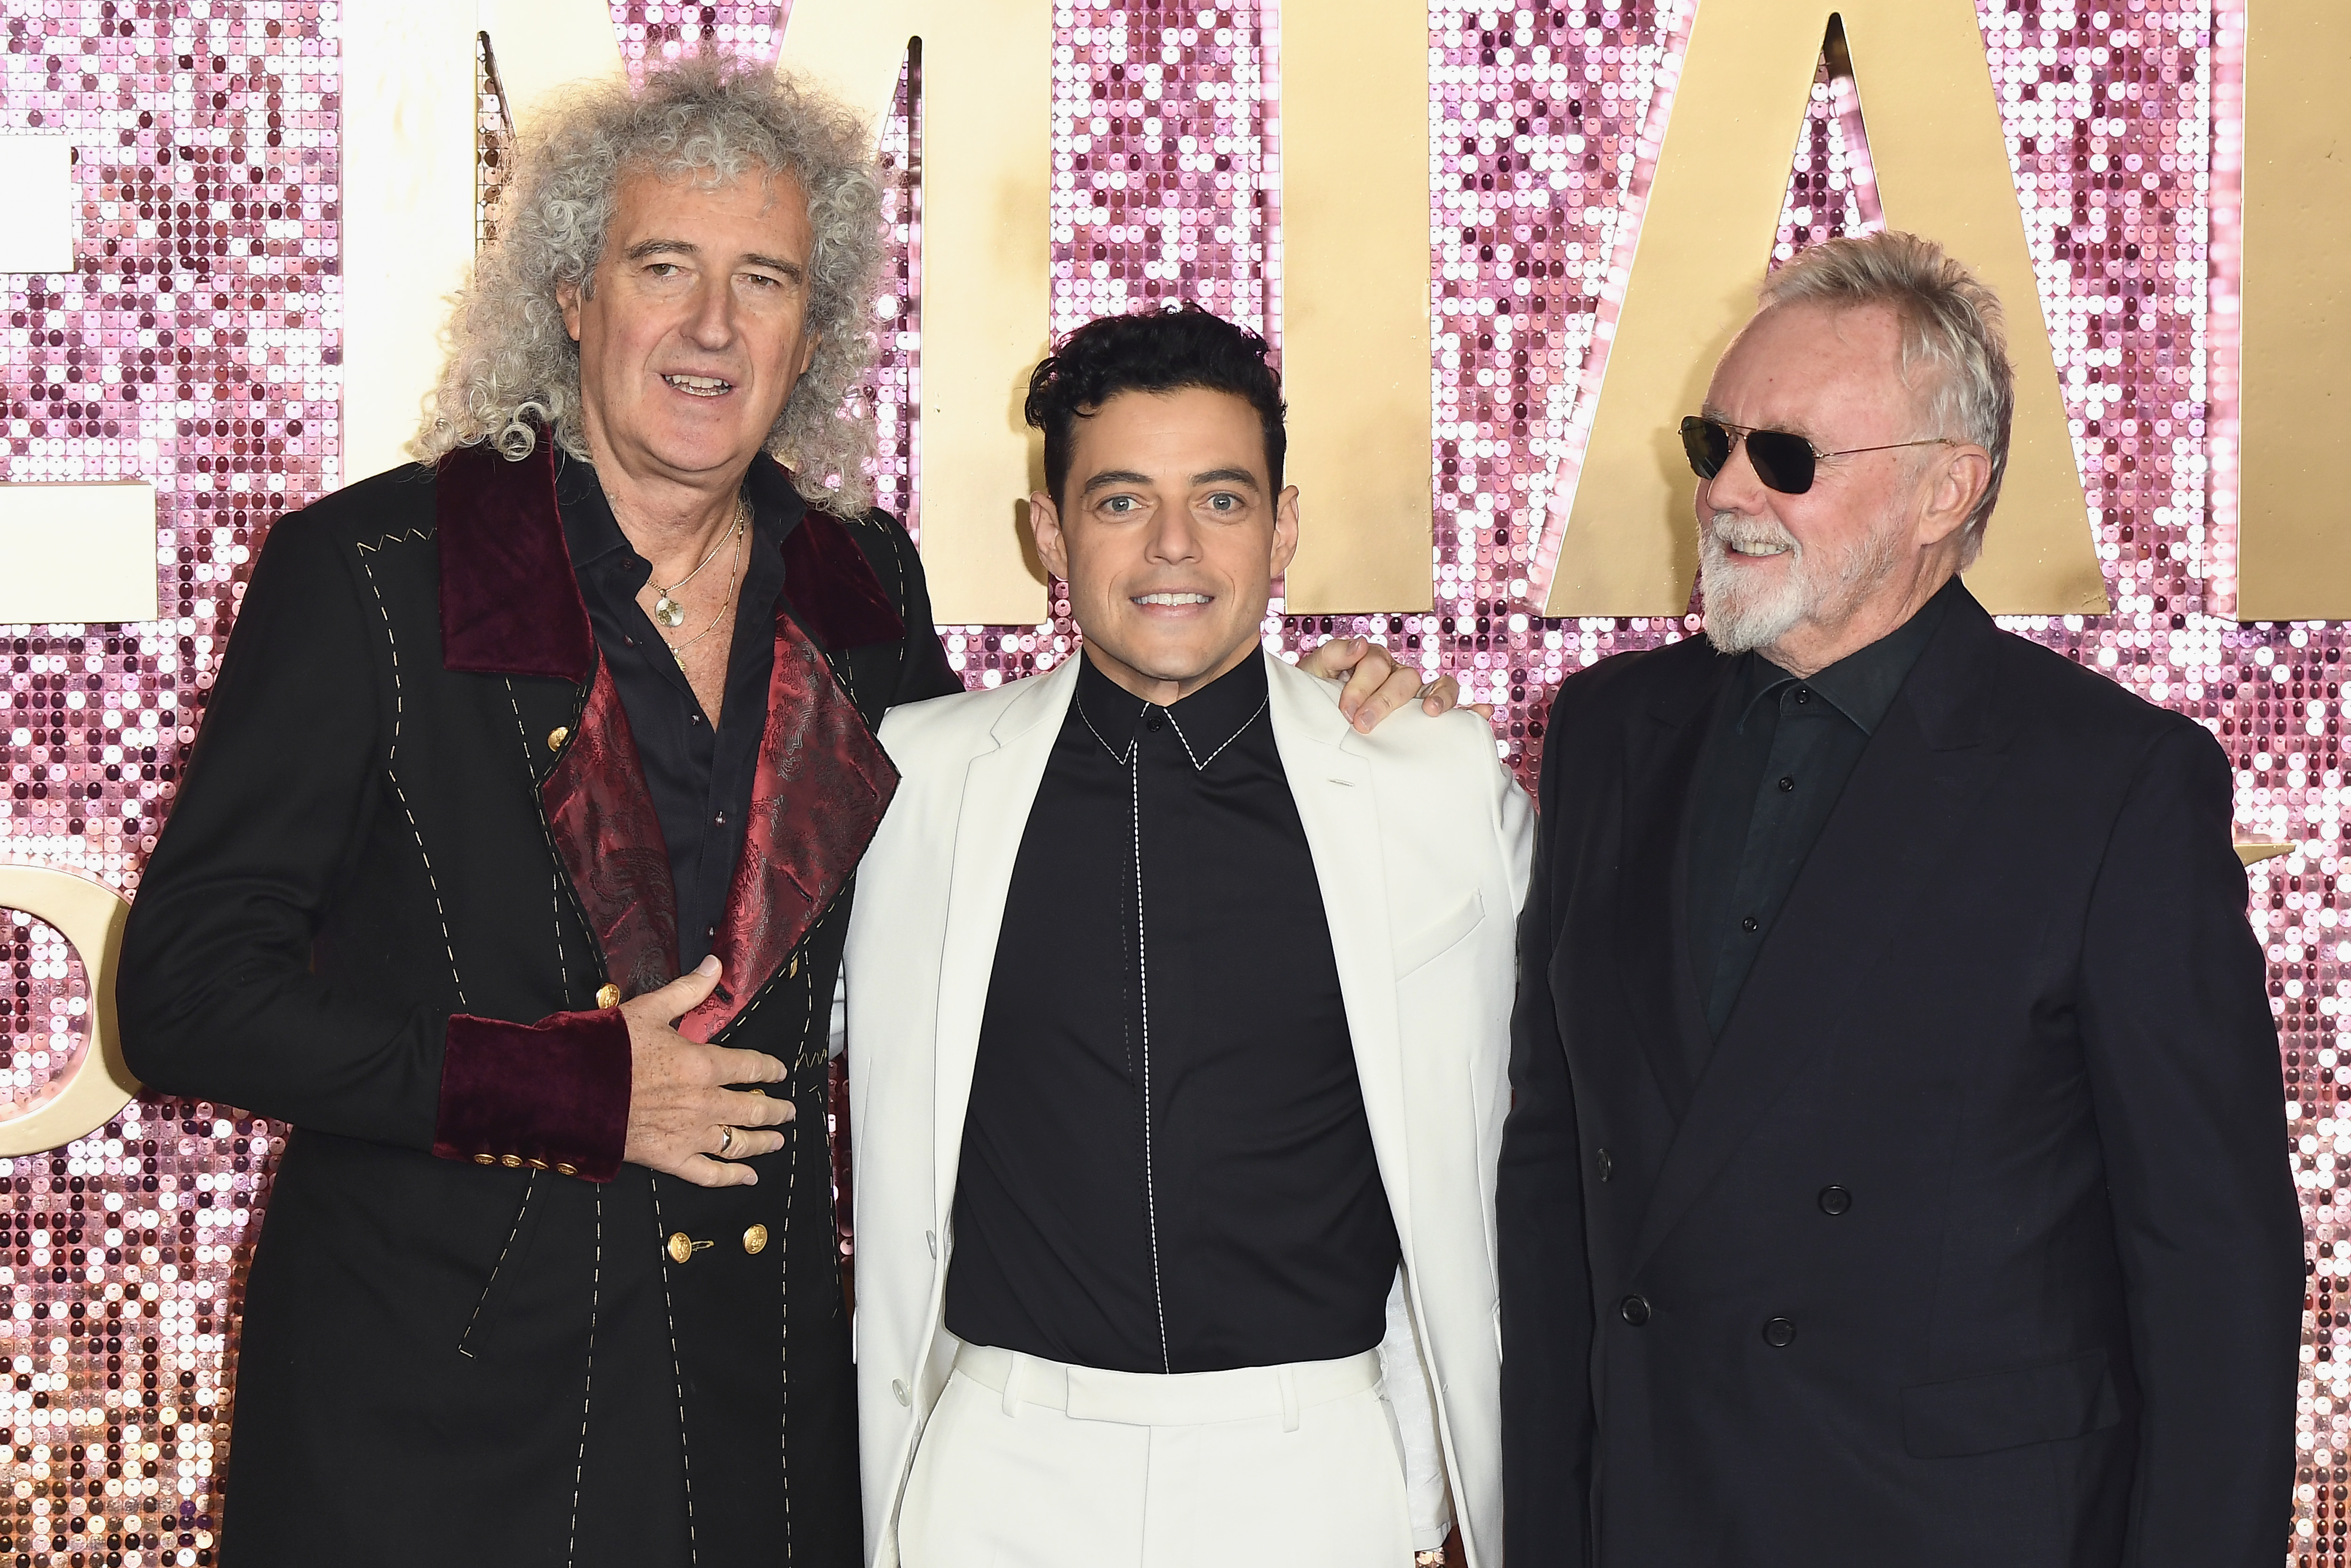 (L-R) Brian May, Rami Malek and Roger Taylor attend the World Premiere of 'Bohemian Rhapsody' at SSE Arena Wembley on October 23, 2018, in London, England. (Getty Images)